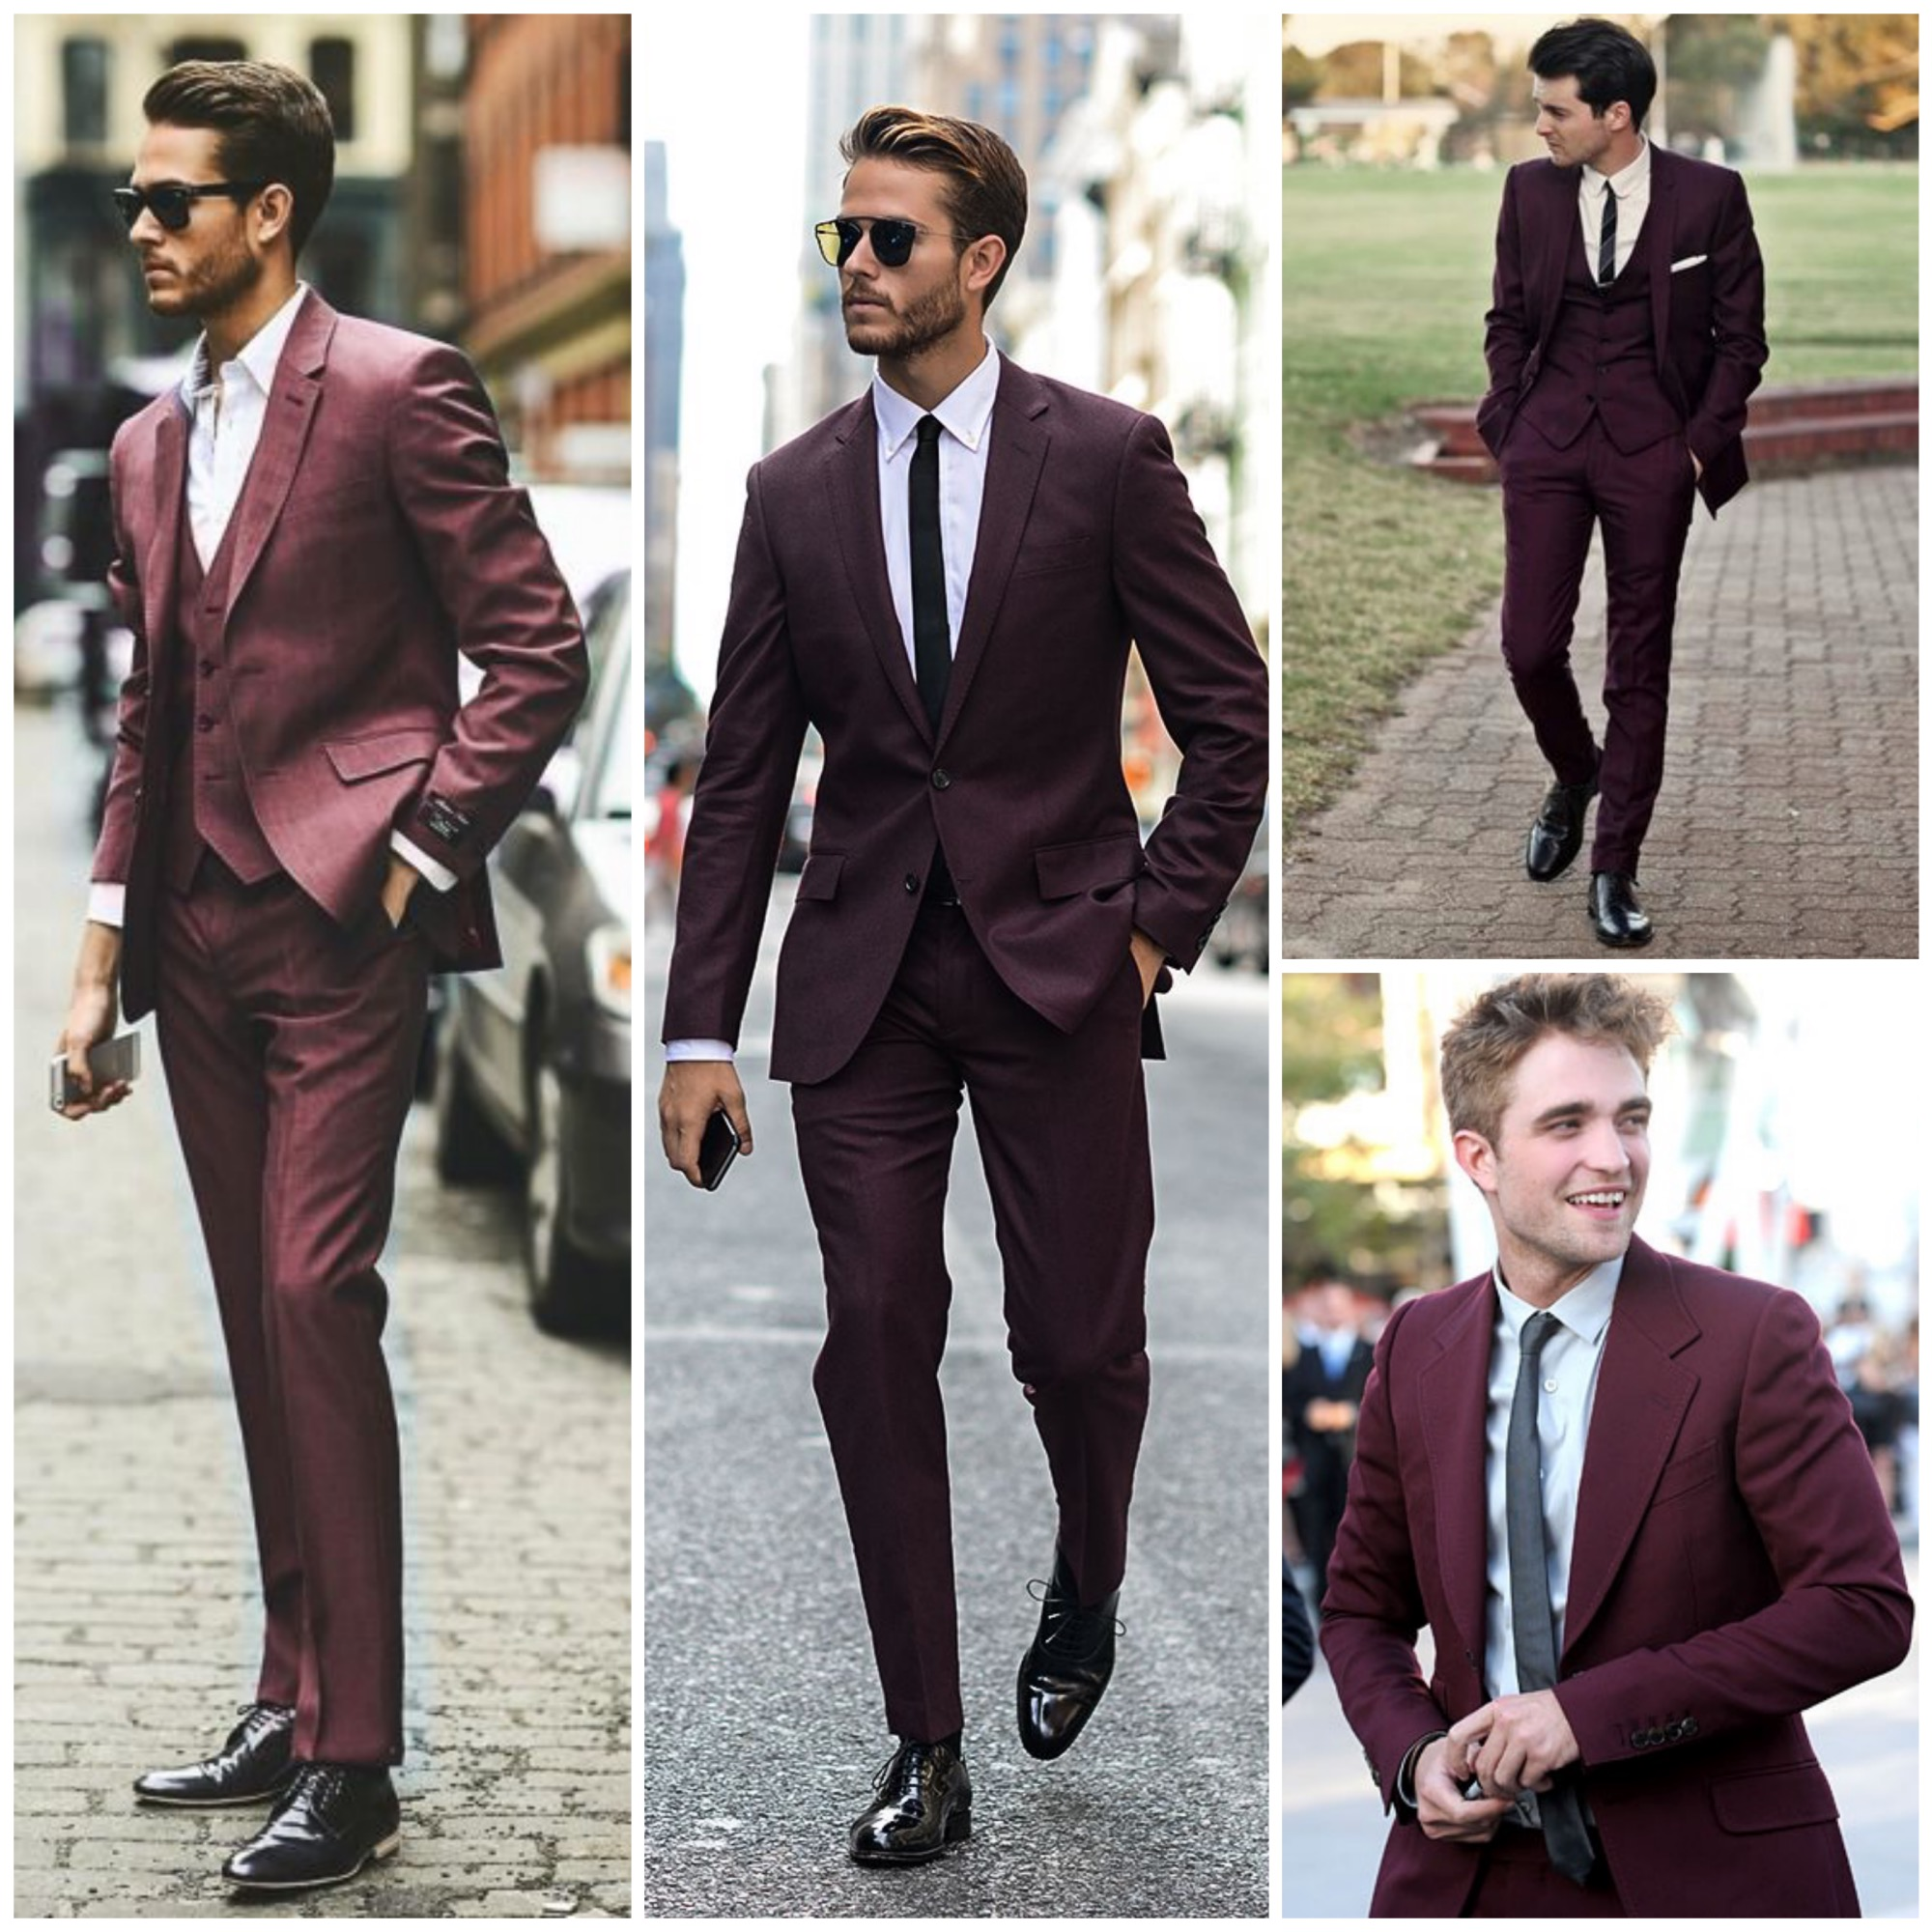 Marsala suit for men